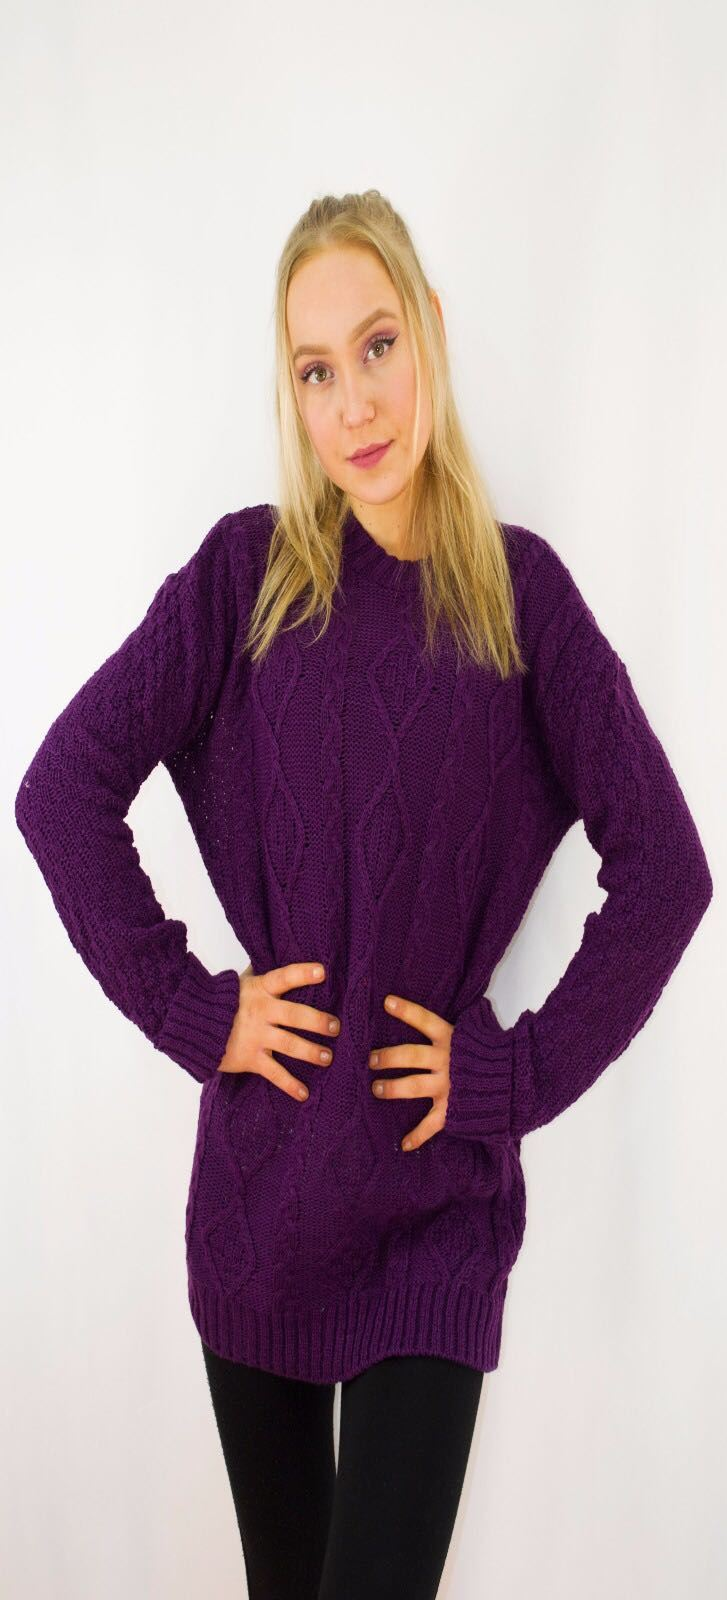 New-Ladies-Long-Manche-Chunky-Cable-Knitted-Jumper-crew-neck-hiver-Sweater-Top miniature 32